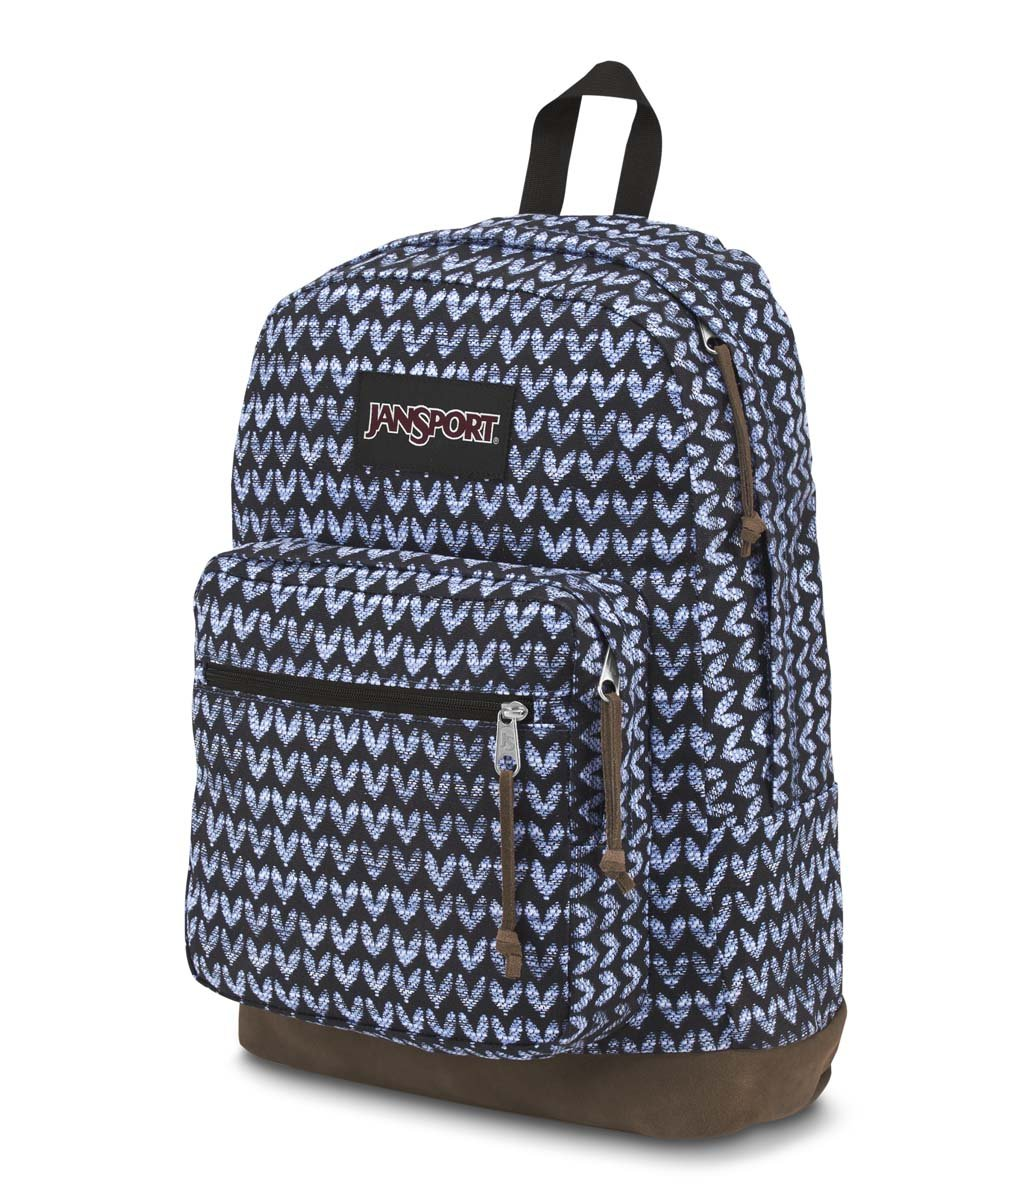 6f13d06ec0be Amazon.com  Jansport Right Pack Expressions Backpack - Turkish Ocean   Computers   Accessories